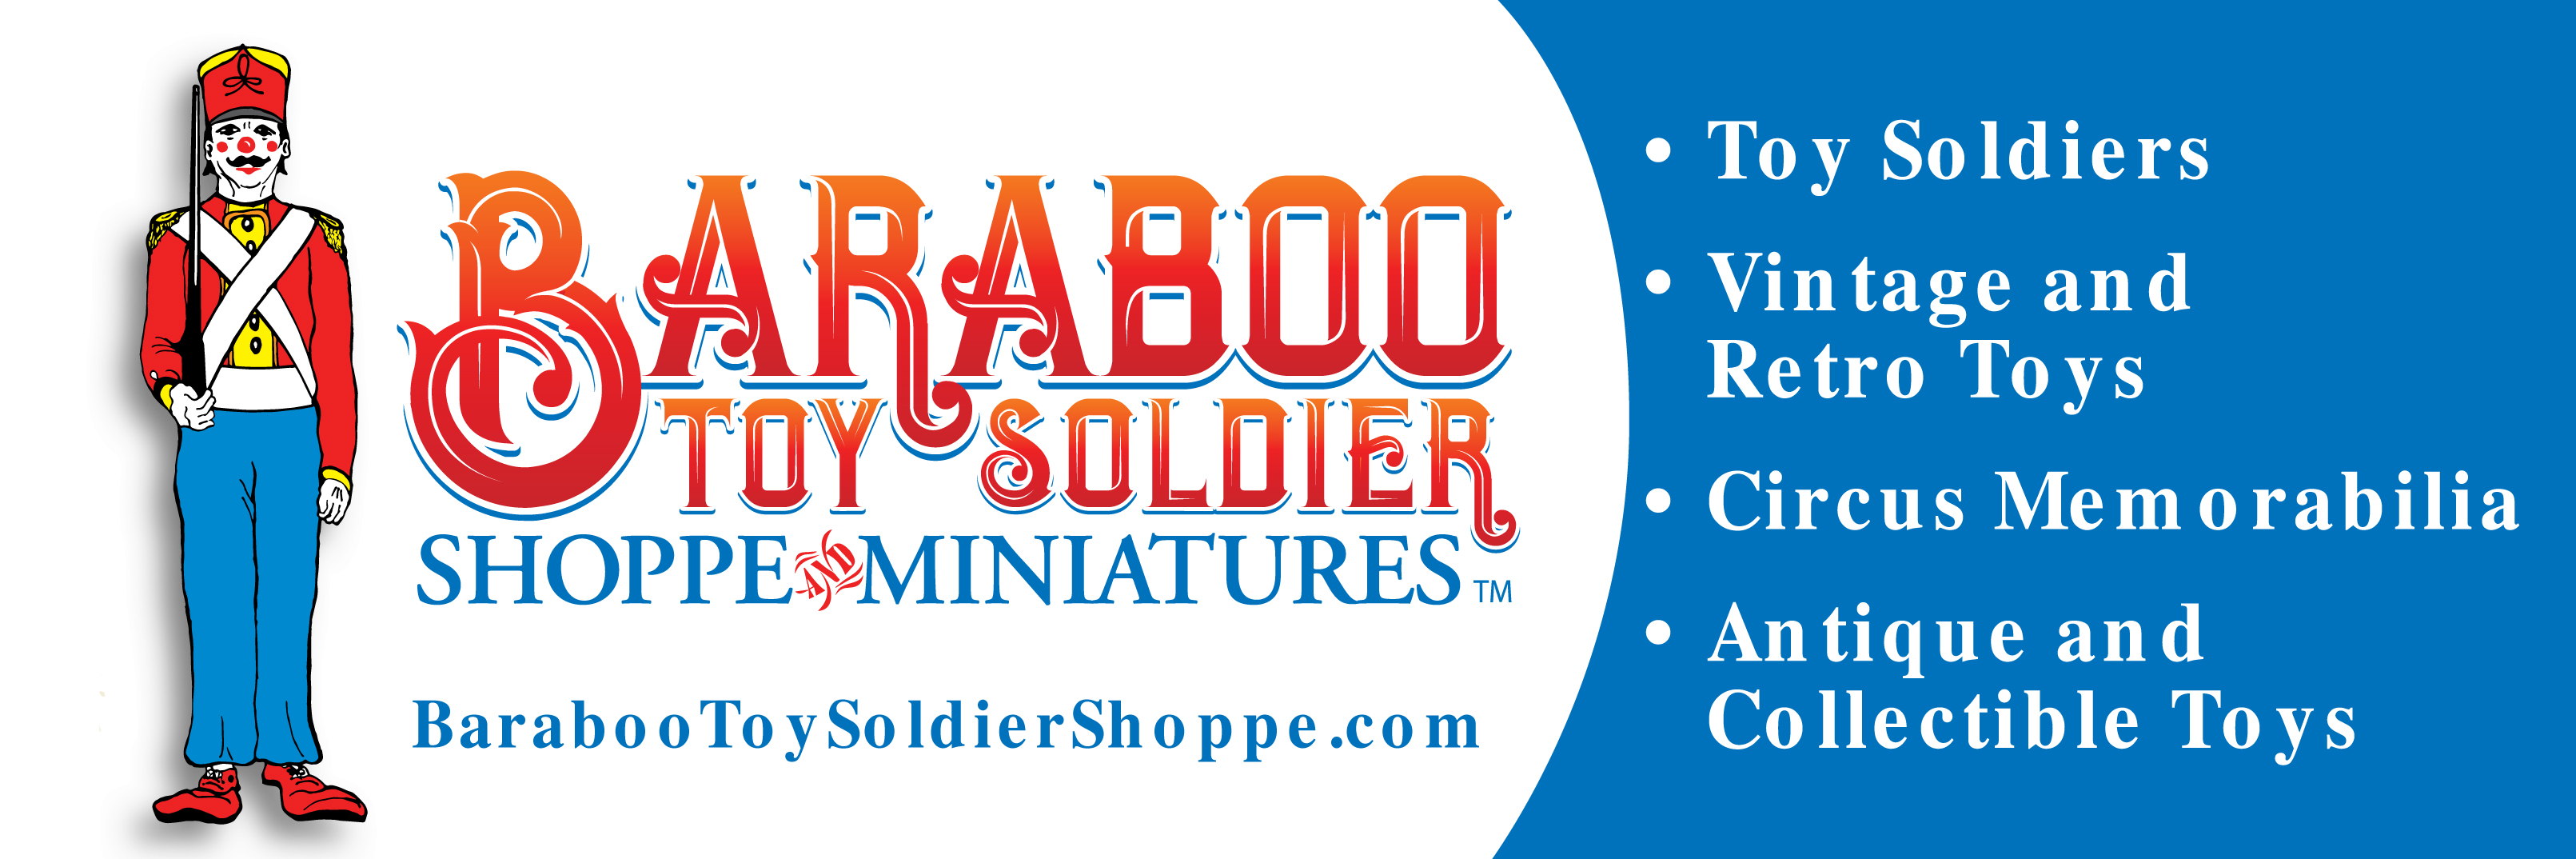 Barabootoy Soldier Shoppe